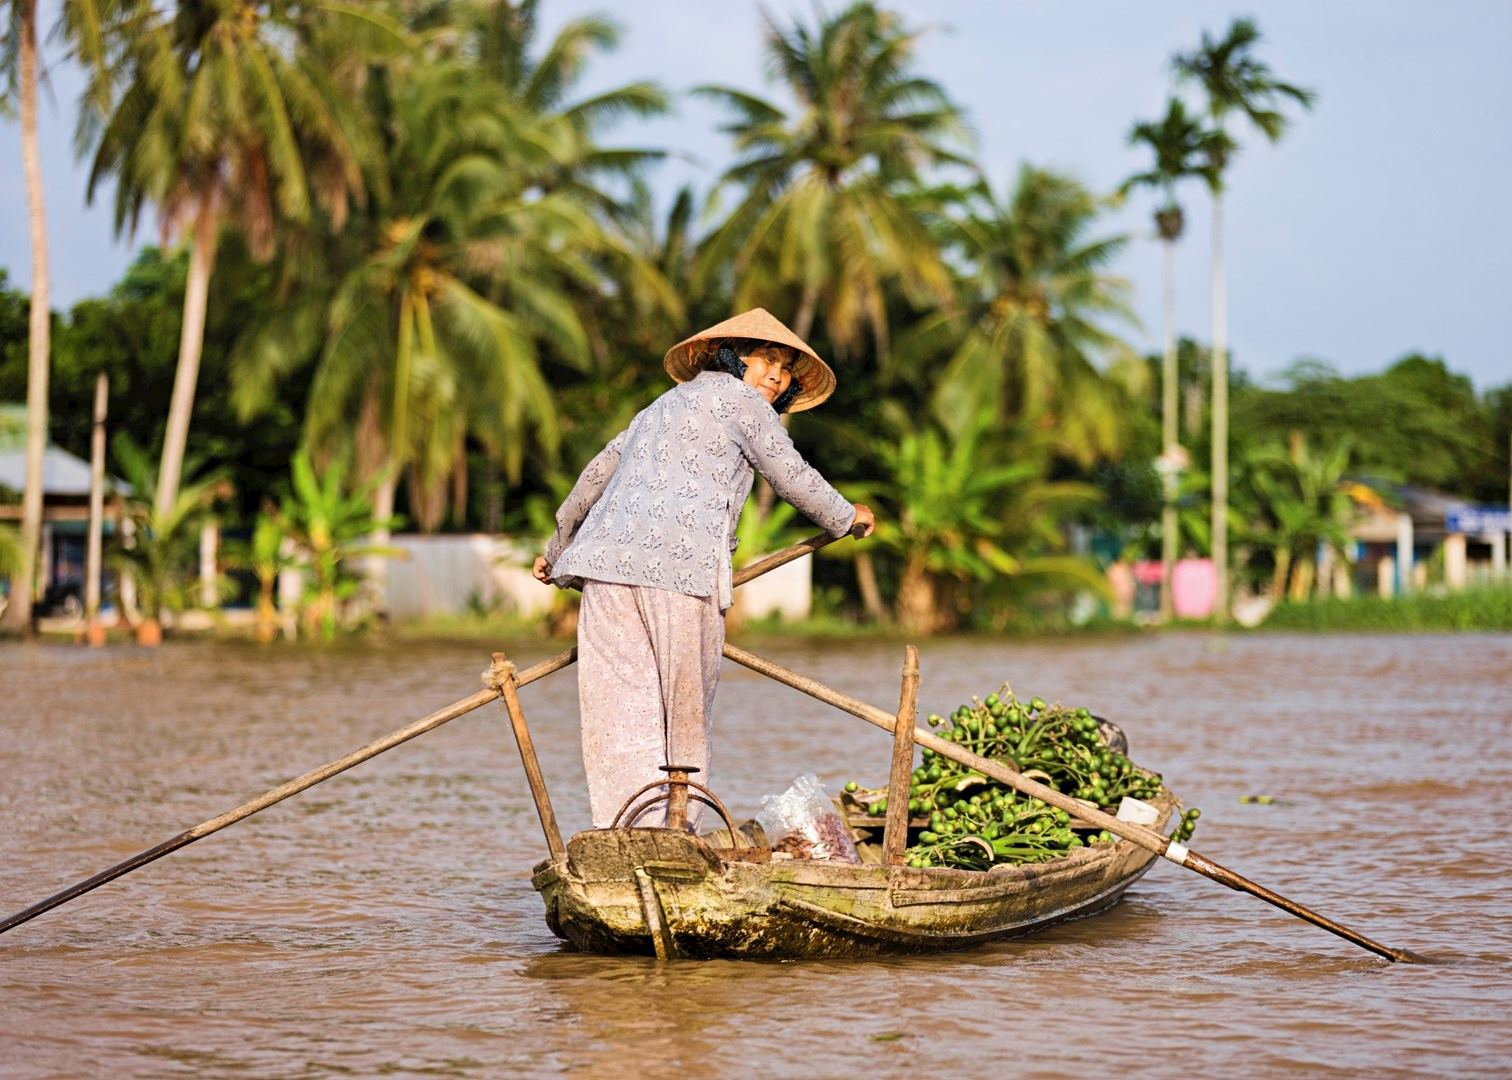 Visit Mekong Delta on a trip to Vietnam | Audley Travel